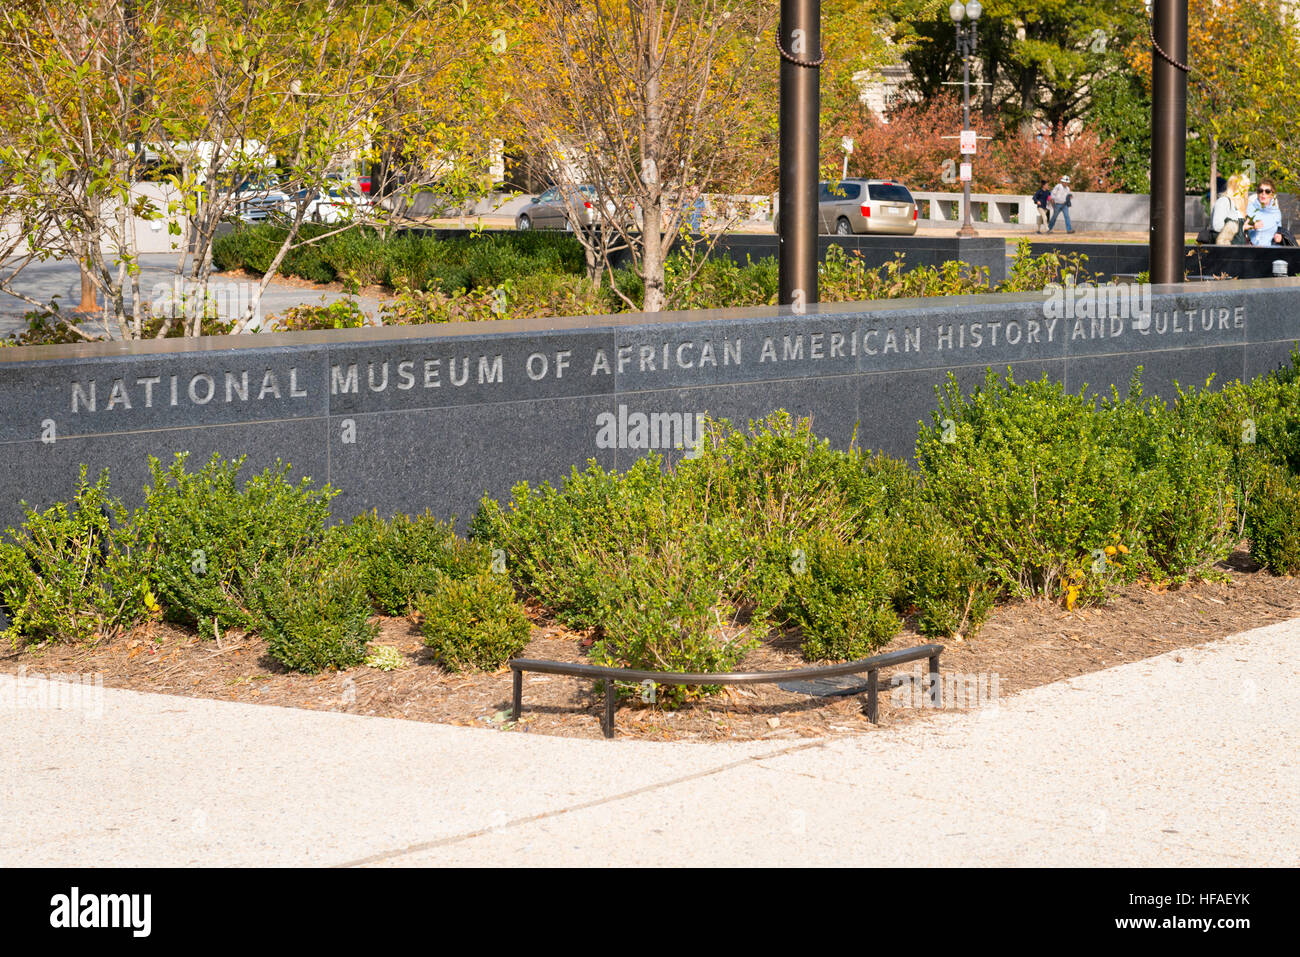 USA capital Washington DC District of Columbia entrance sign National Museum of African American History & Culture - Stock Image